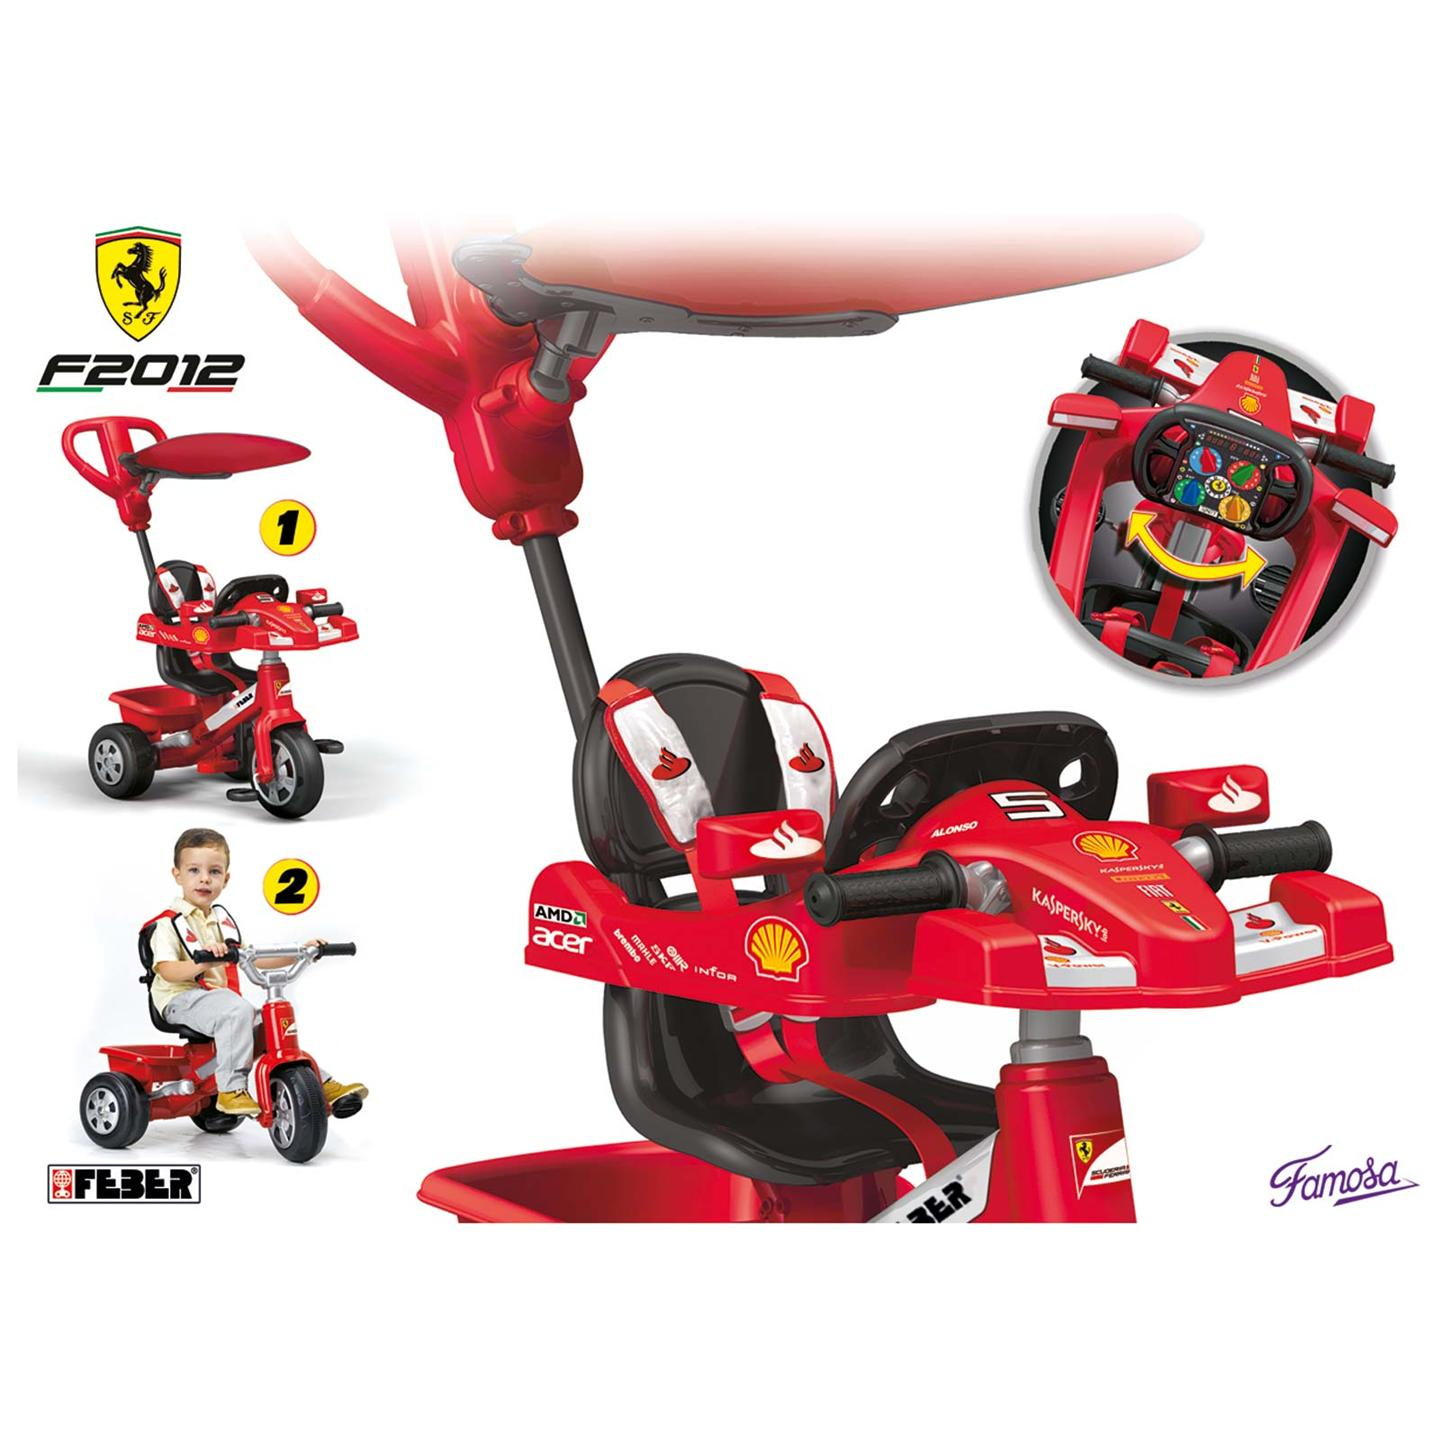 Ferrari Trike Tricycle W Parent Handle New Free P P Ebay